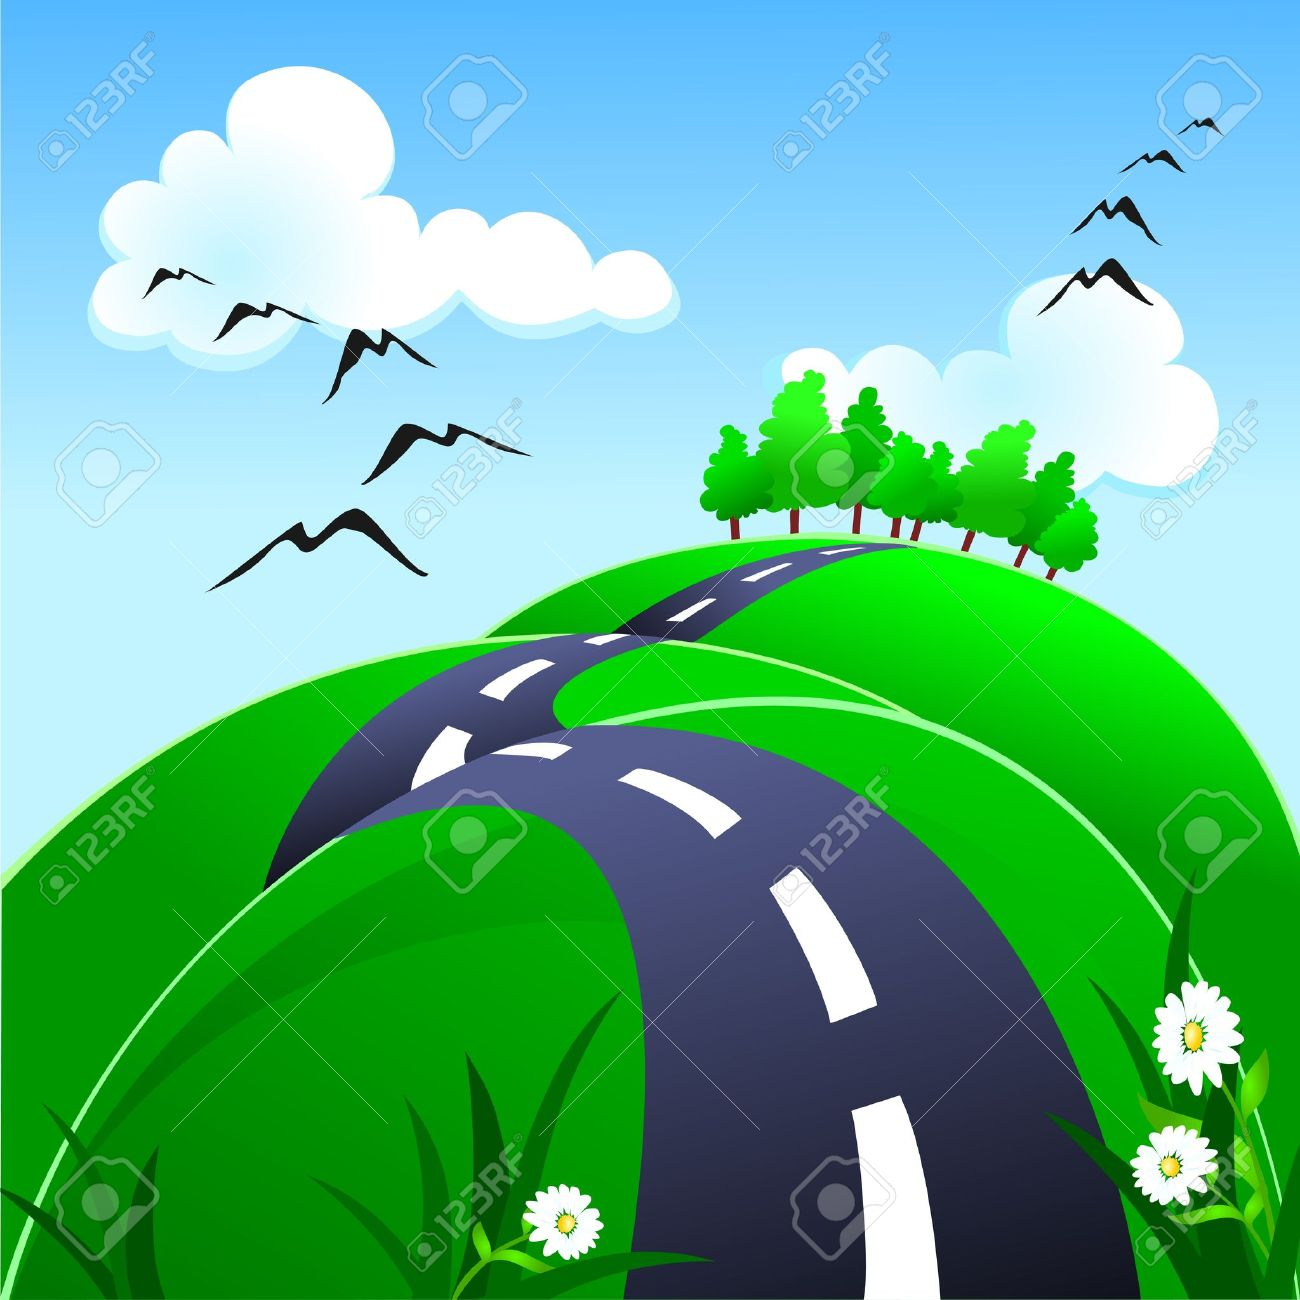 Hilly road clipart.